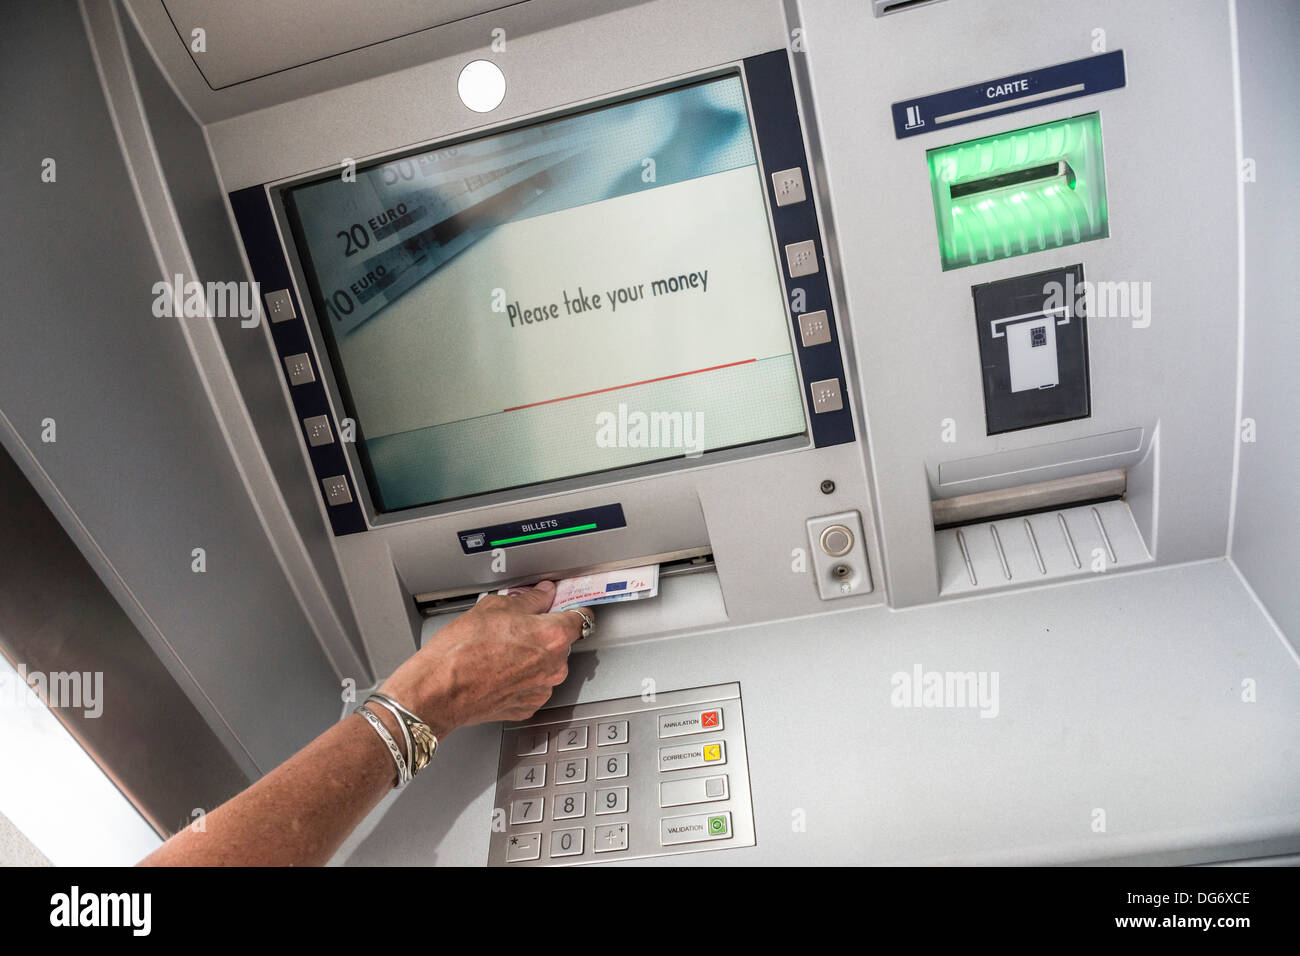 Getting Euro money from an ATM in France. - Stock Image